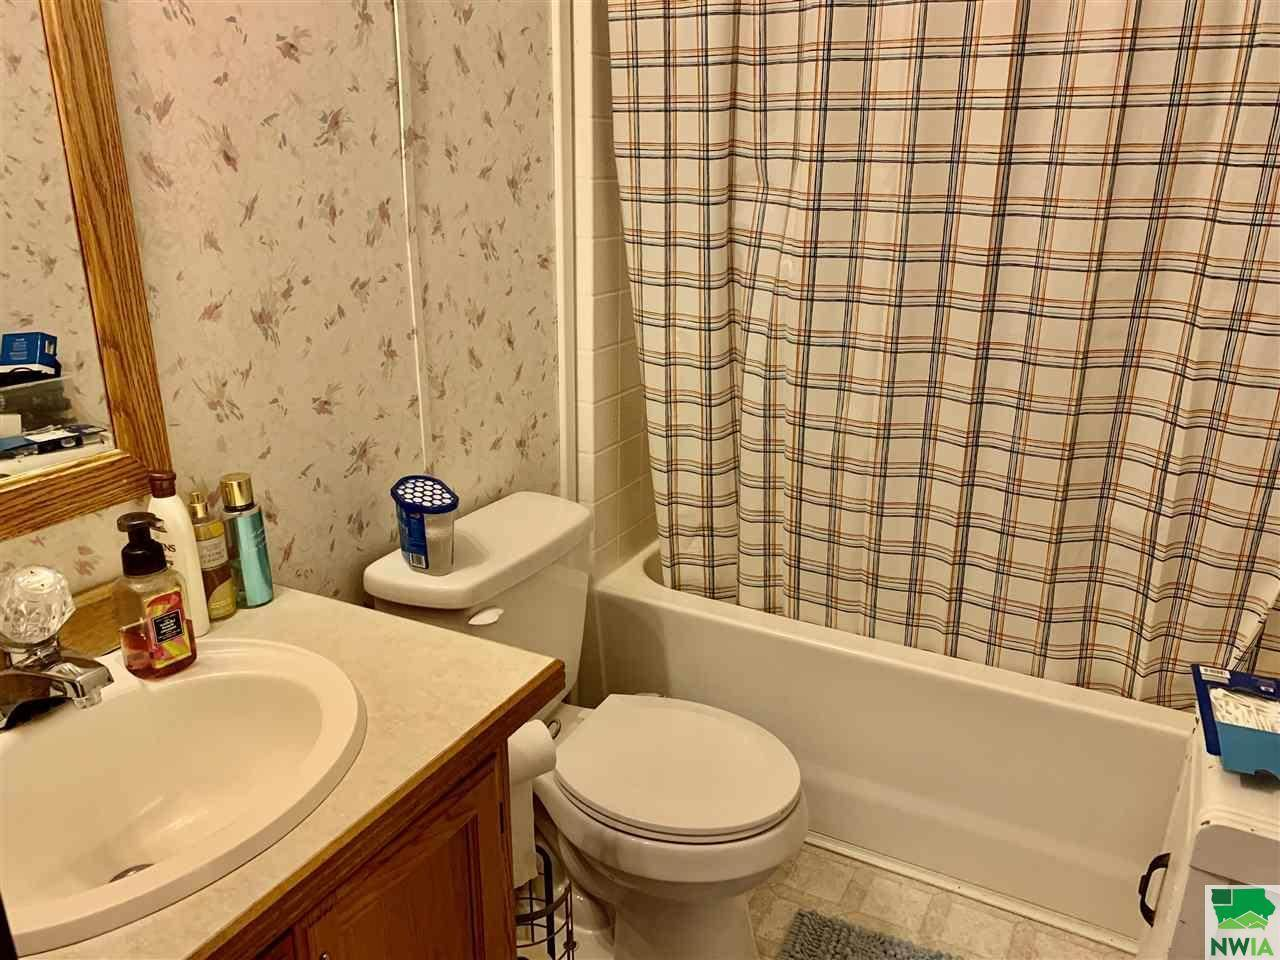 218 N 2ND ST, Moville, IA 51039